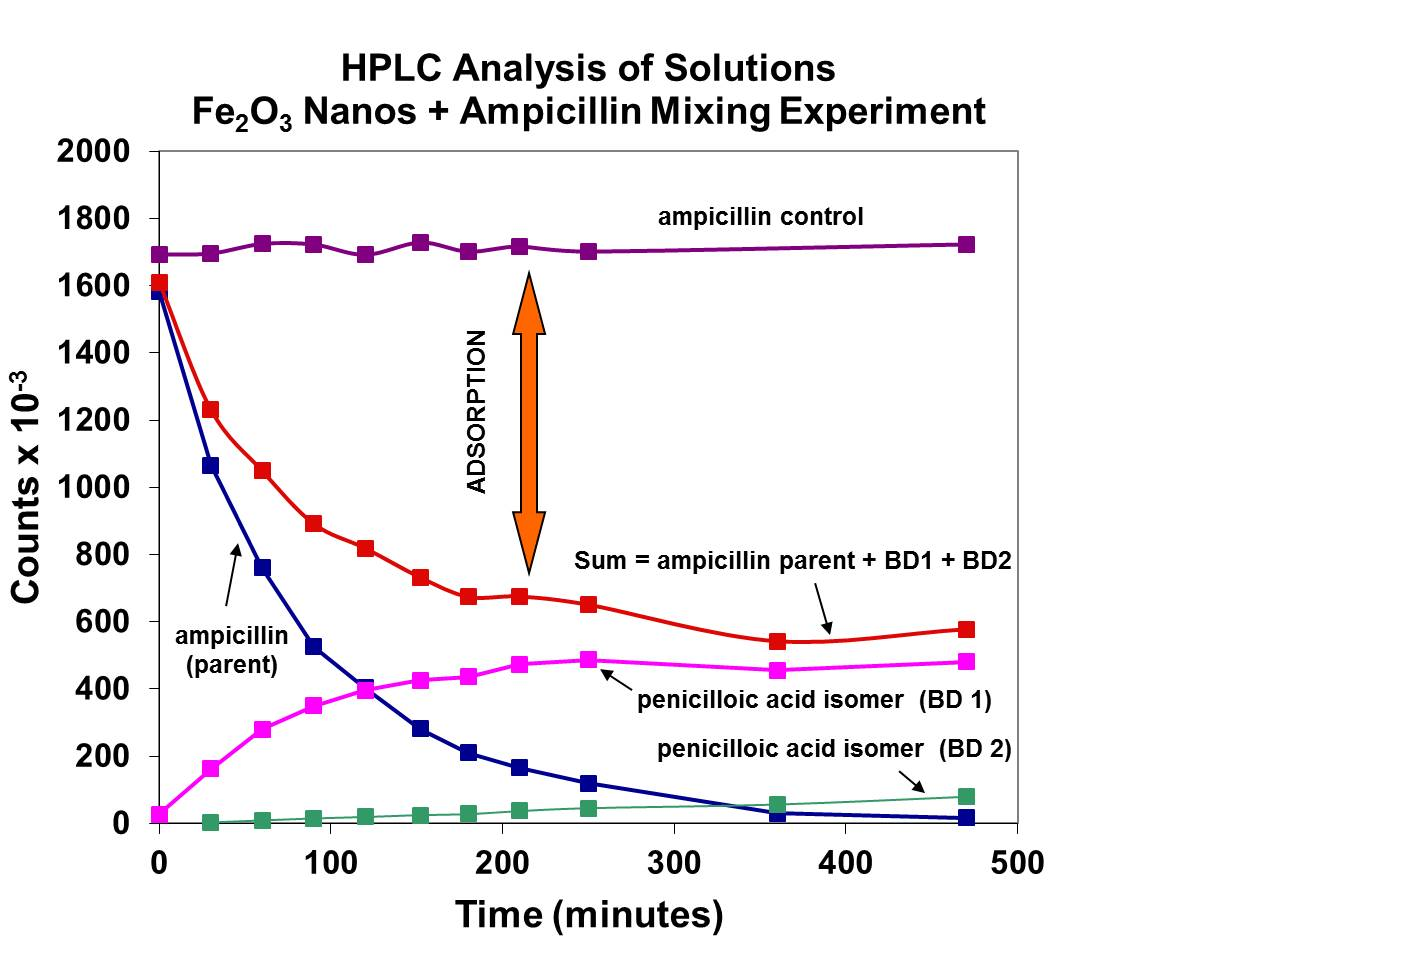 Graph showing decrease in ampicillin over time when mixed with iron oxide nanoparticles